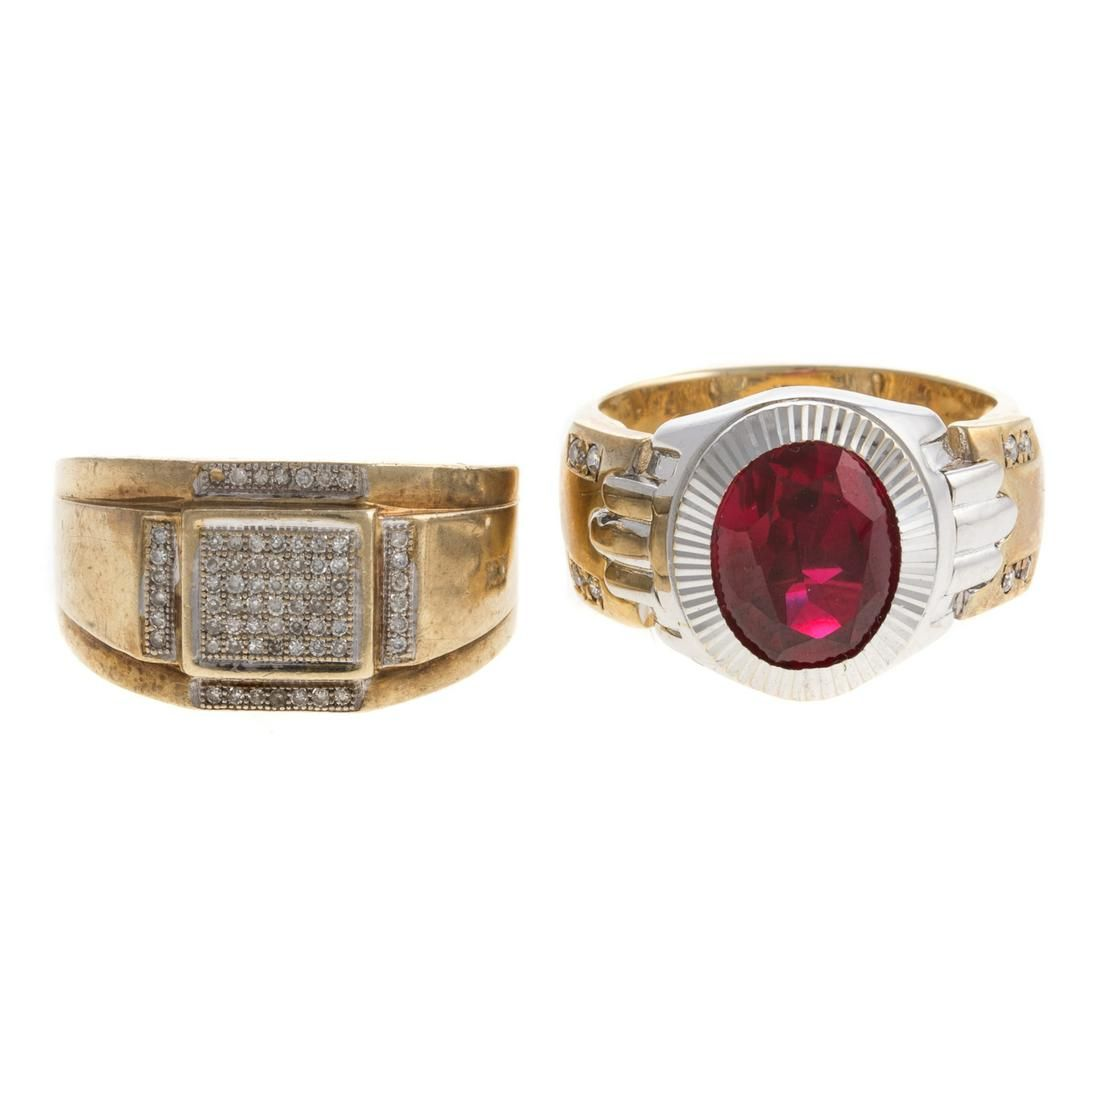 Two Gentlemens Rings with Diamonds in Gold